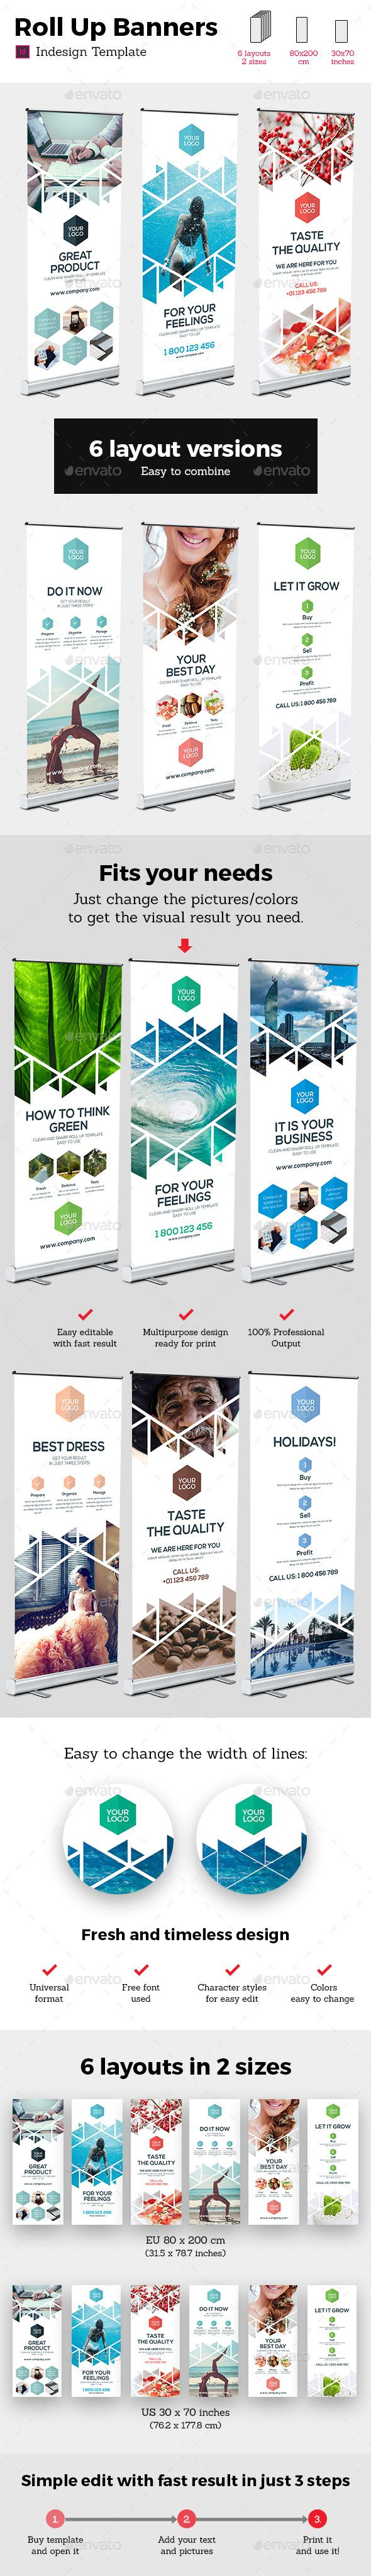 Rollup Stand Banner Display Triangles White 12x Indesign Template by petovexclusive Rollup Stand Banner Display Triangle White 12x Indesign Template Simple and modern multipurpose rollup banner stand indesign prin